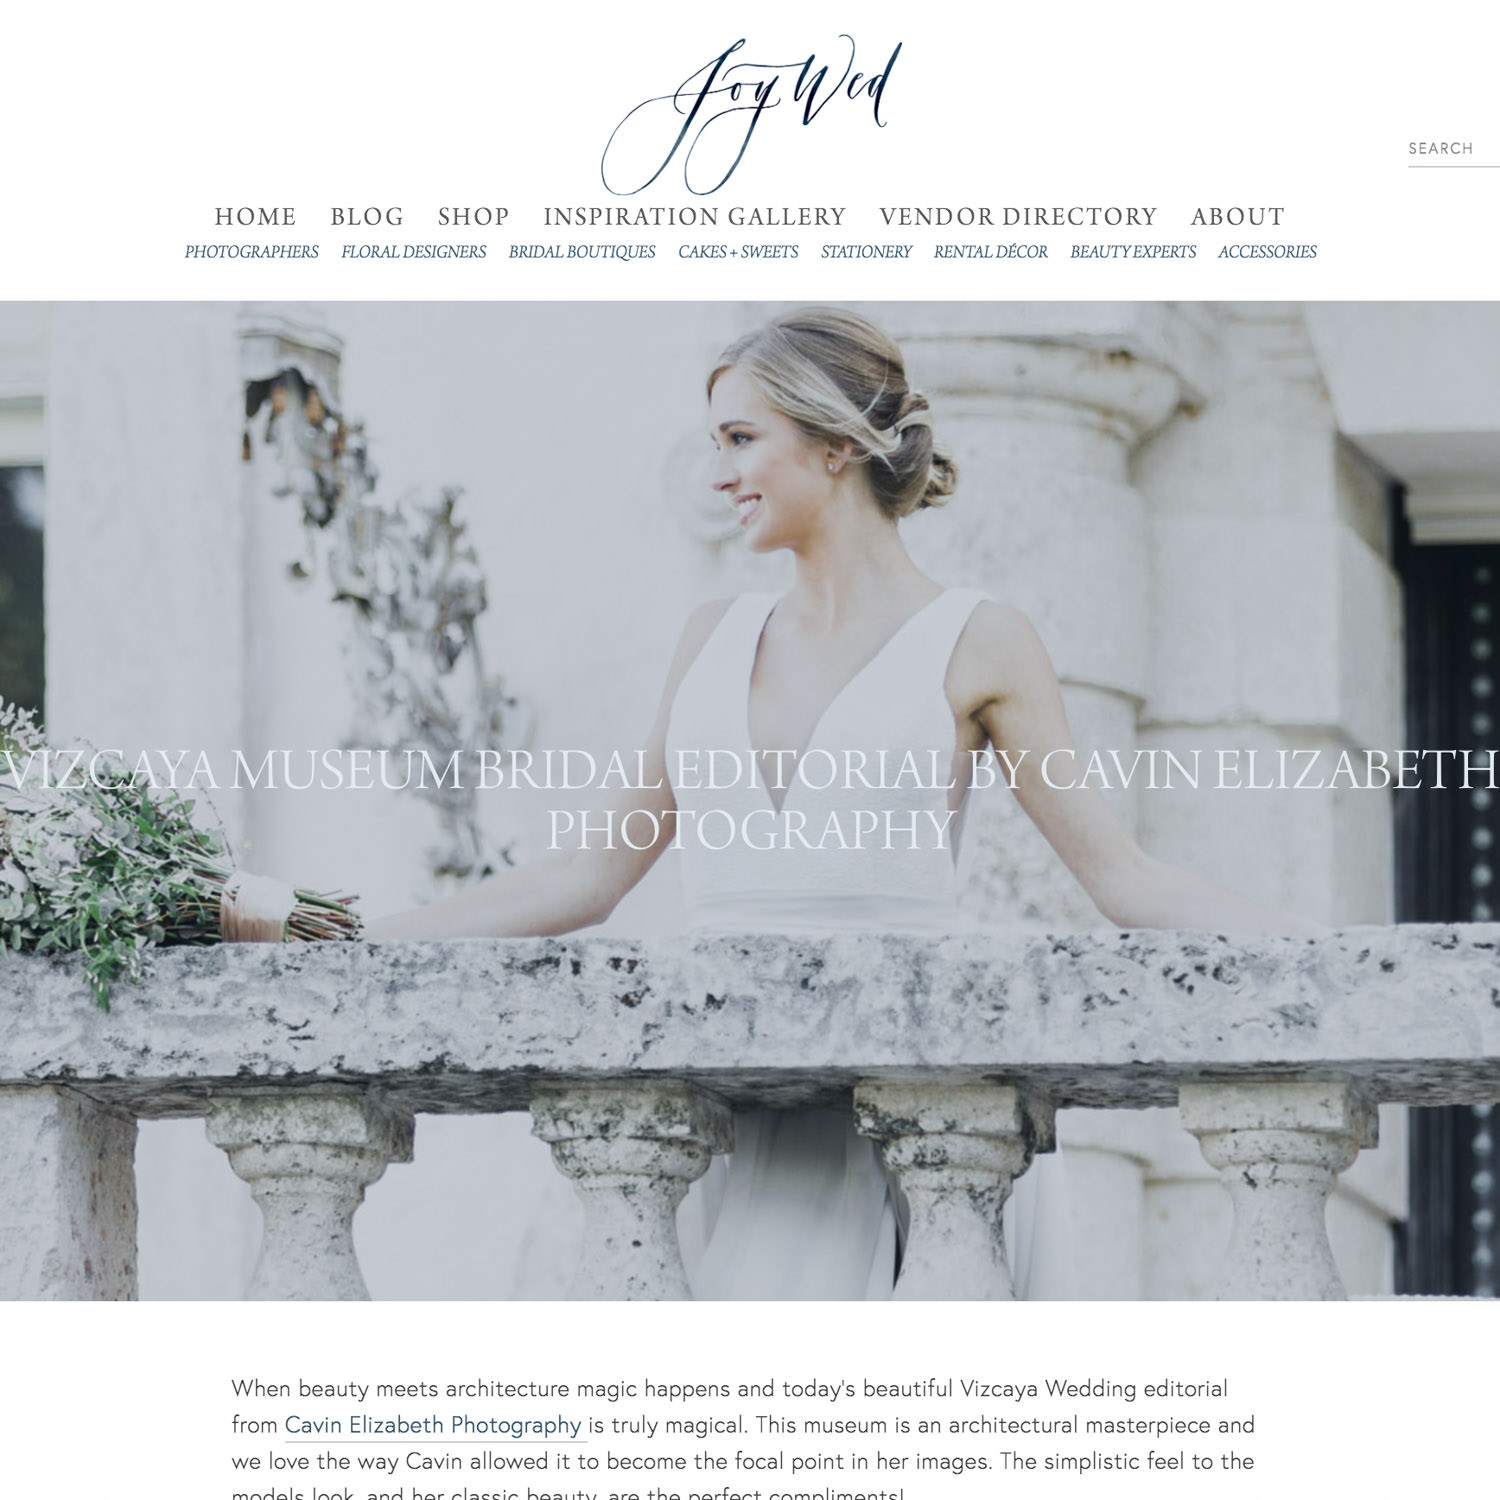 Miami Wedding Editorial at Vizcaya Museum Published on Joy Wed